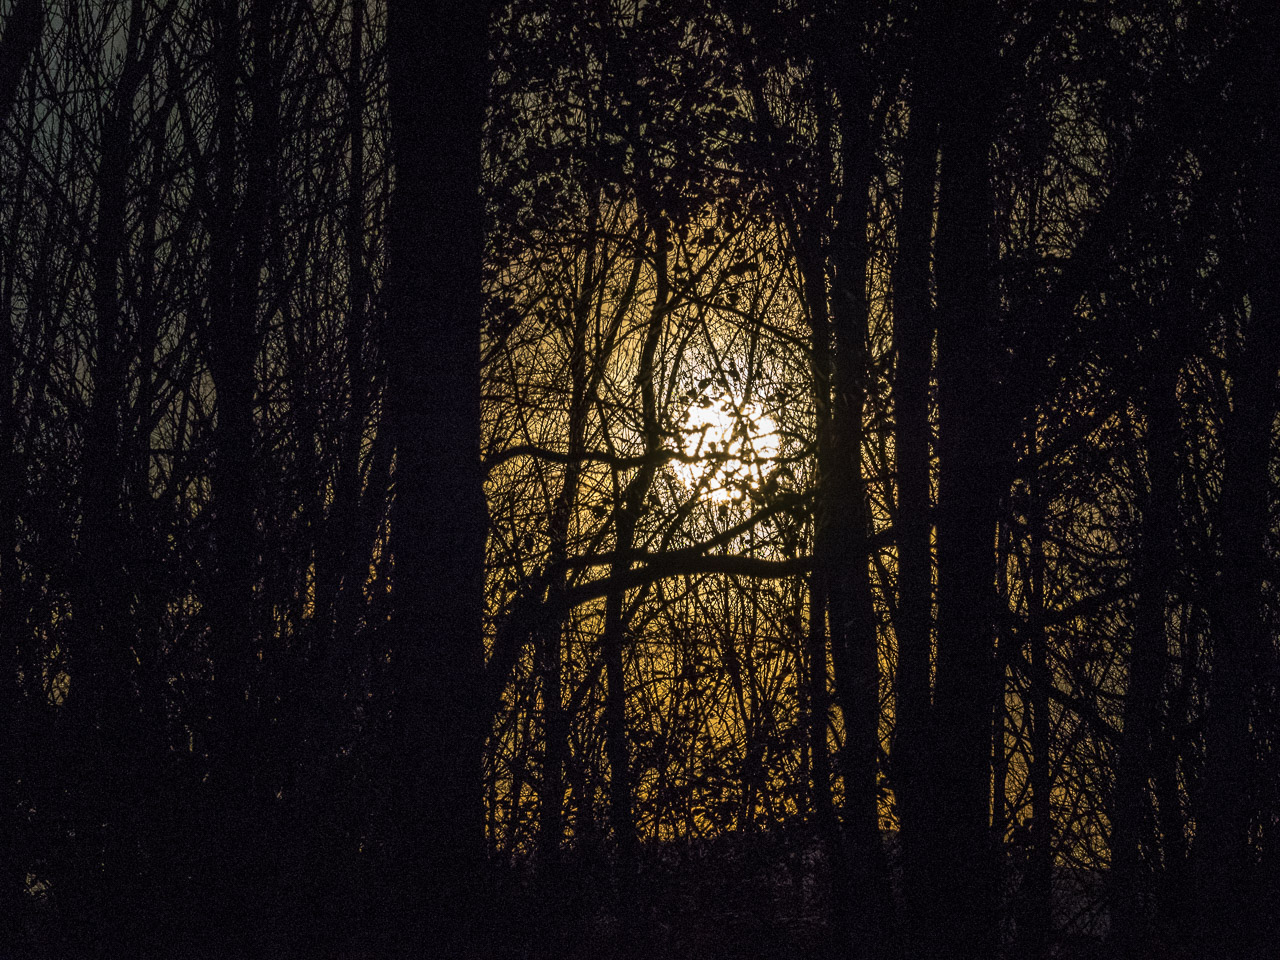 Moonlight through Silhouette Woods, Williamstown, MA